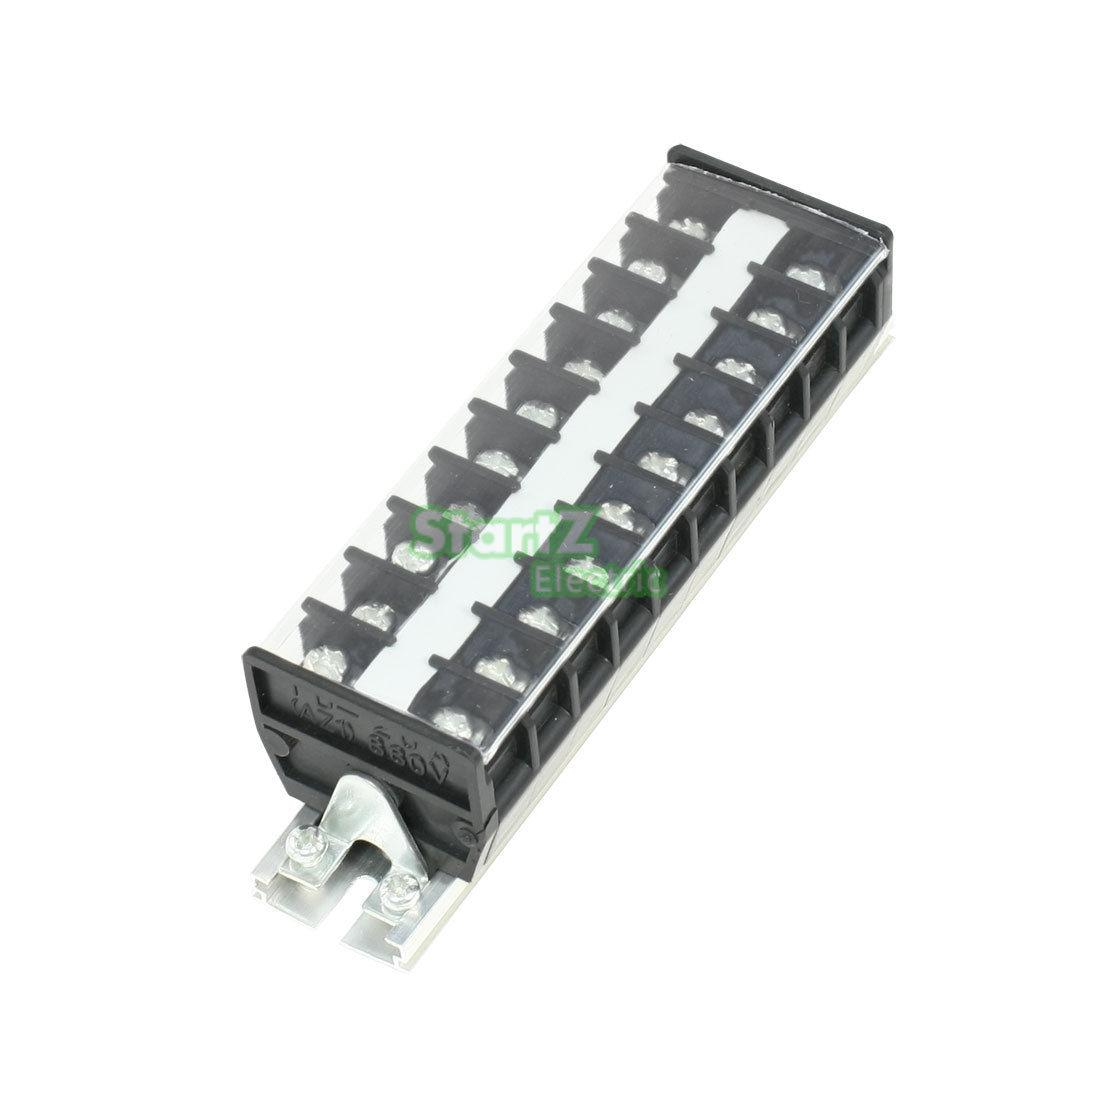 1Pcs 660V 20A Din Rail Screw Connector Electric Terminal Barrier TD-2010 5 pcs 400v 20a 7 position screw barrier terminal block bar connector replacement